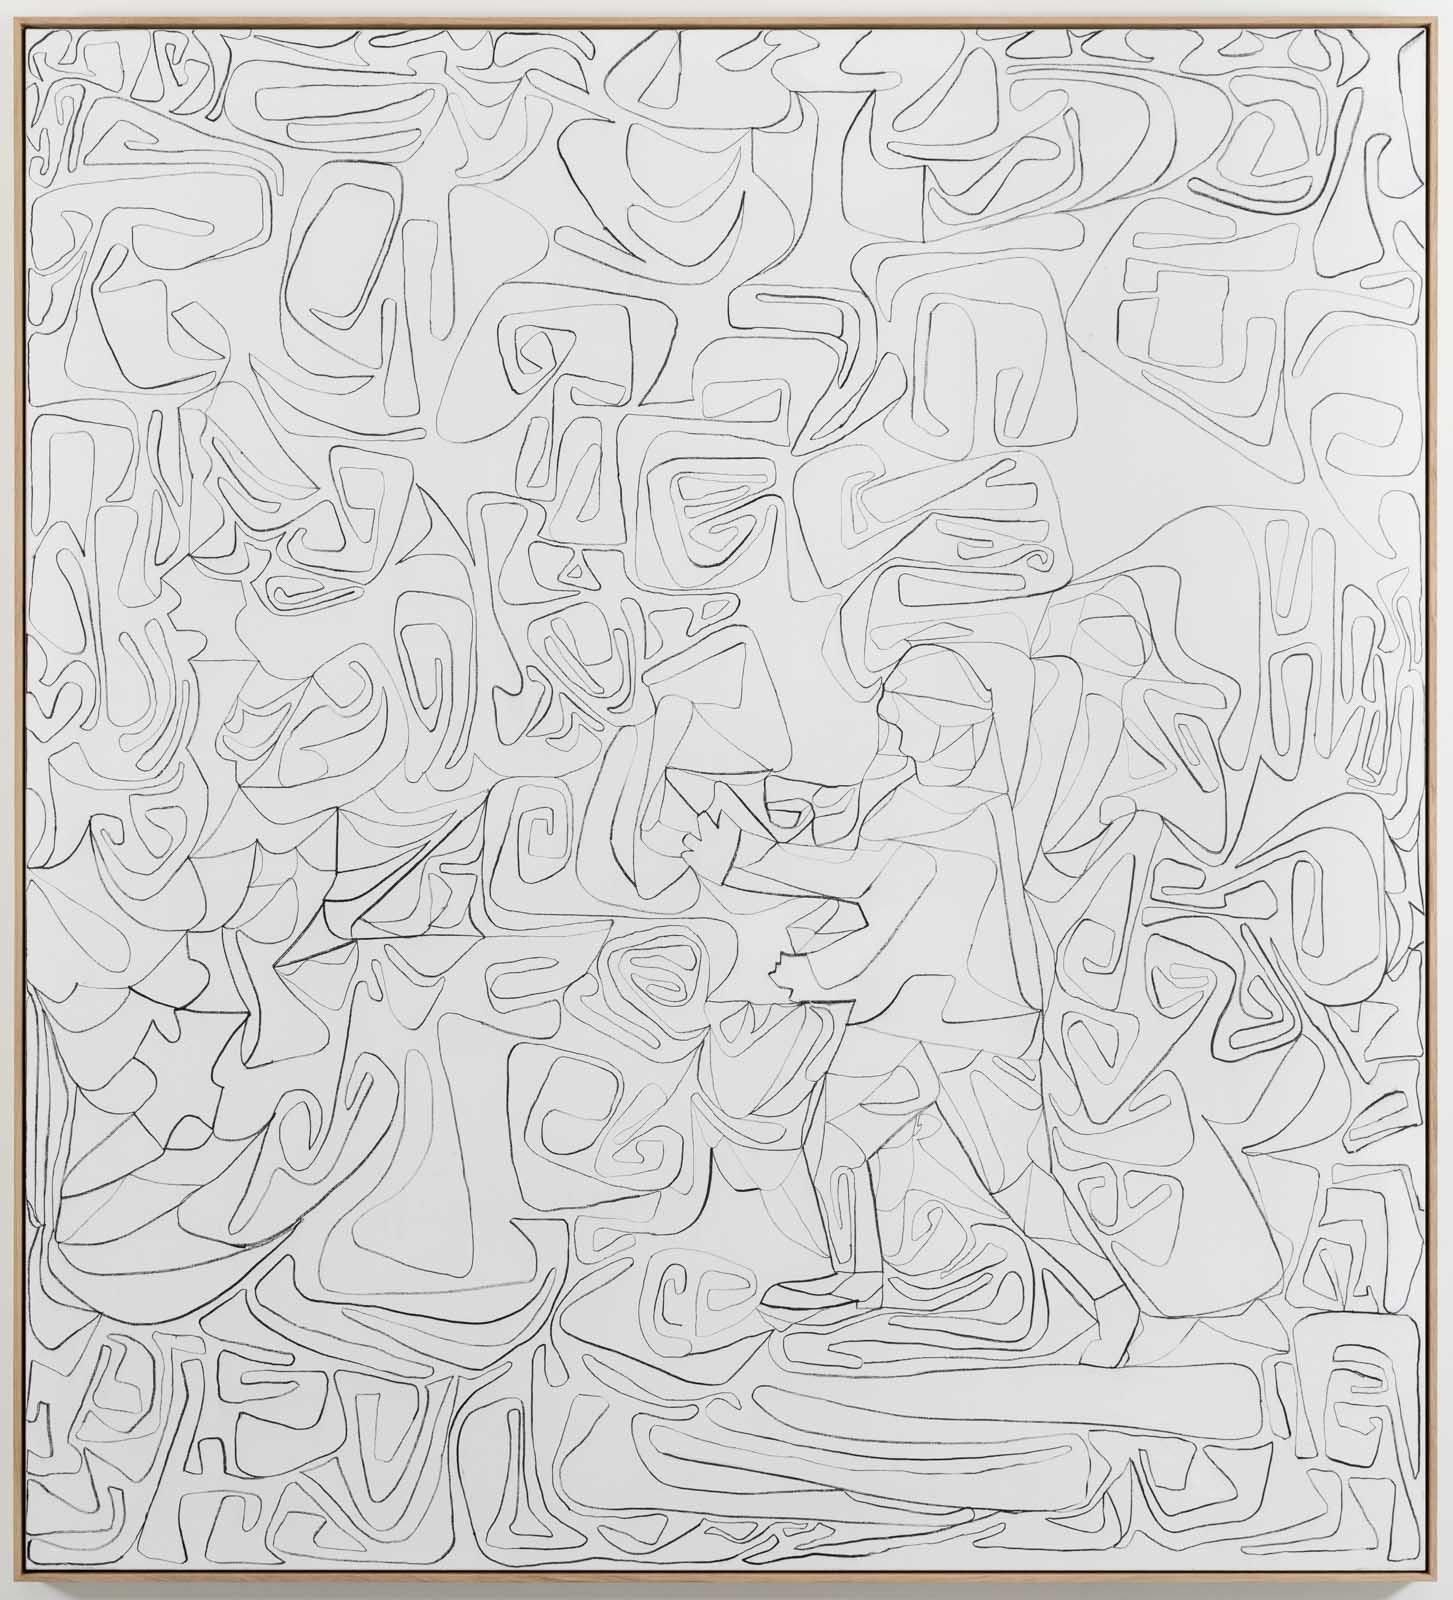 The Inventarium Drawing No. 04, 2019. Charcoal on canvas, 220 x 200 cm